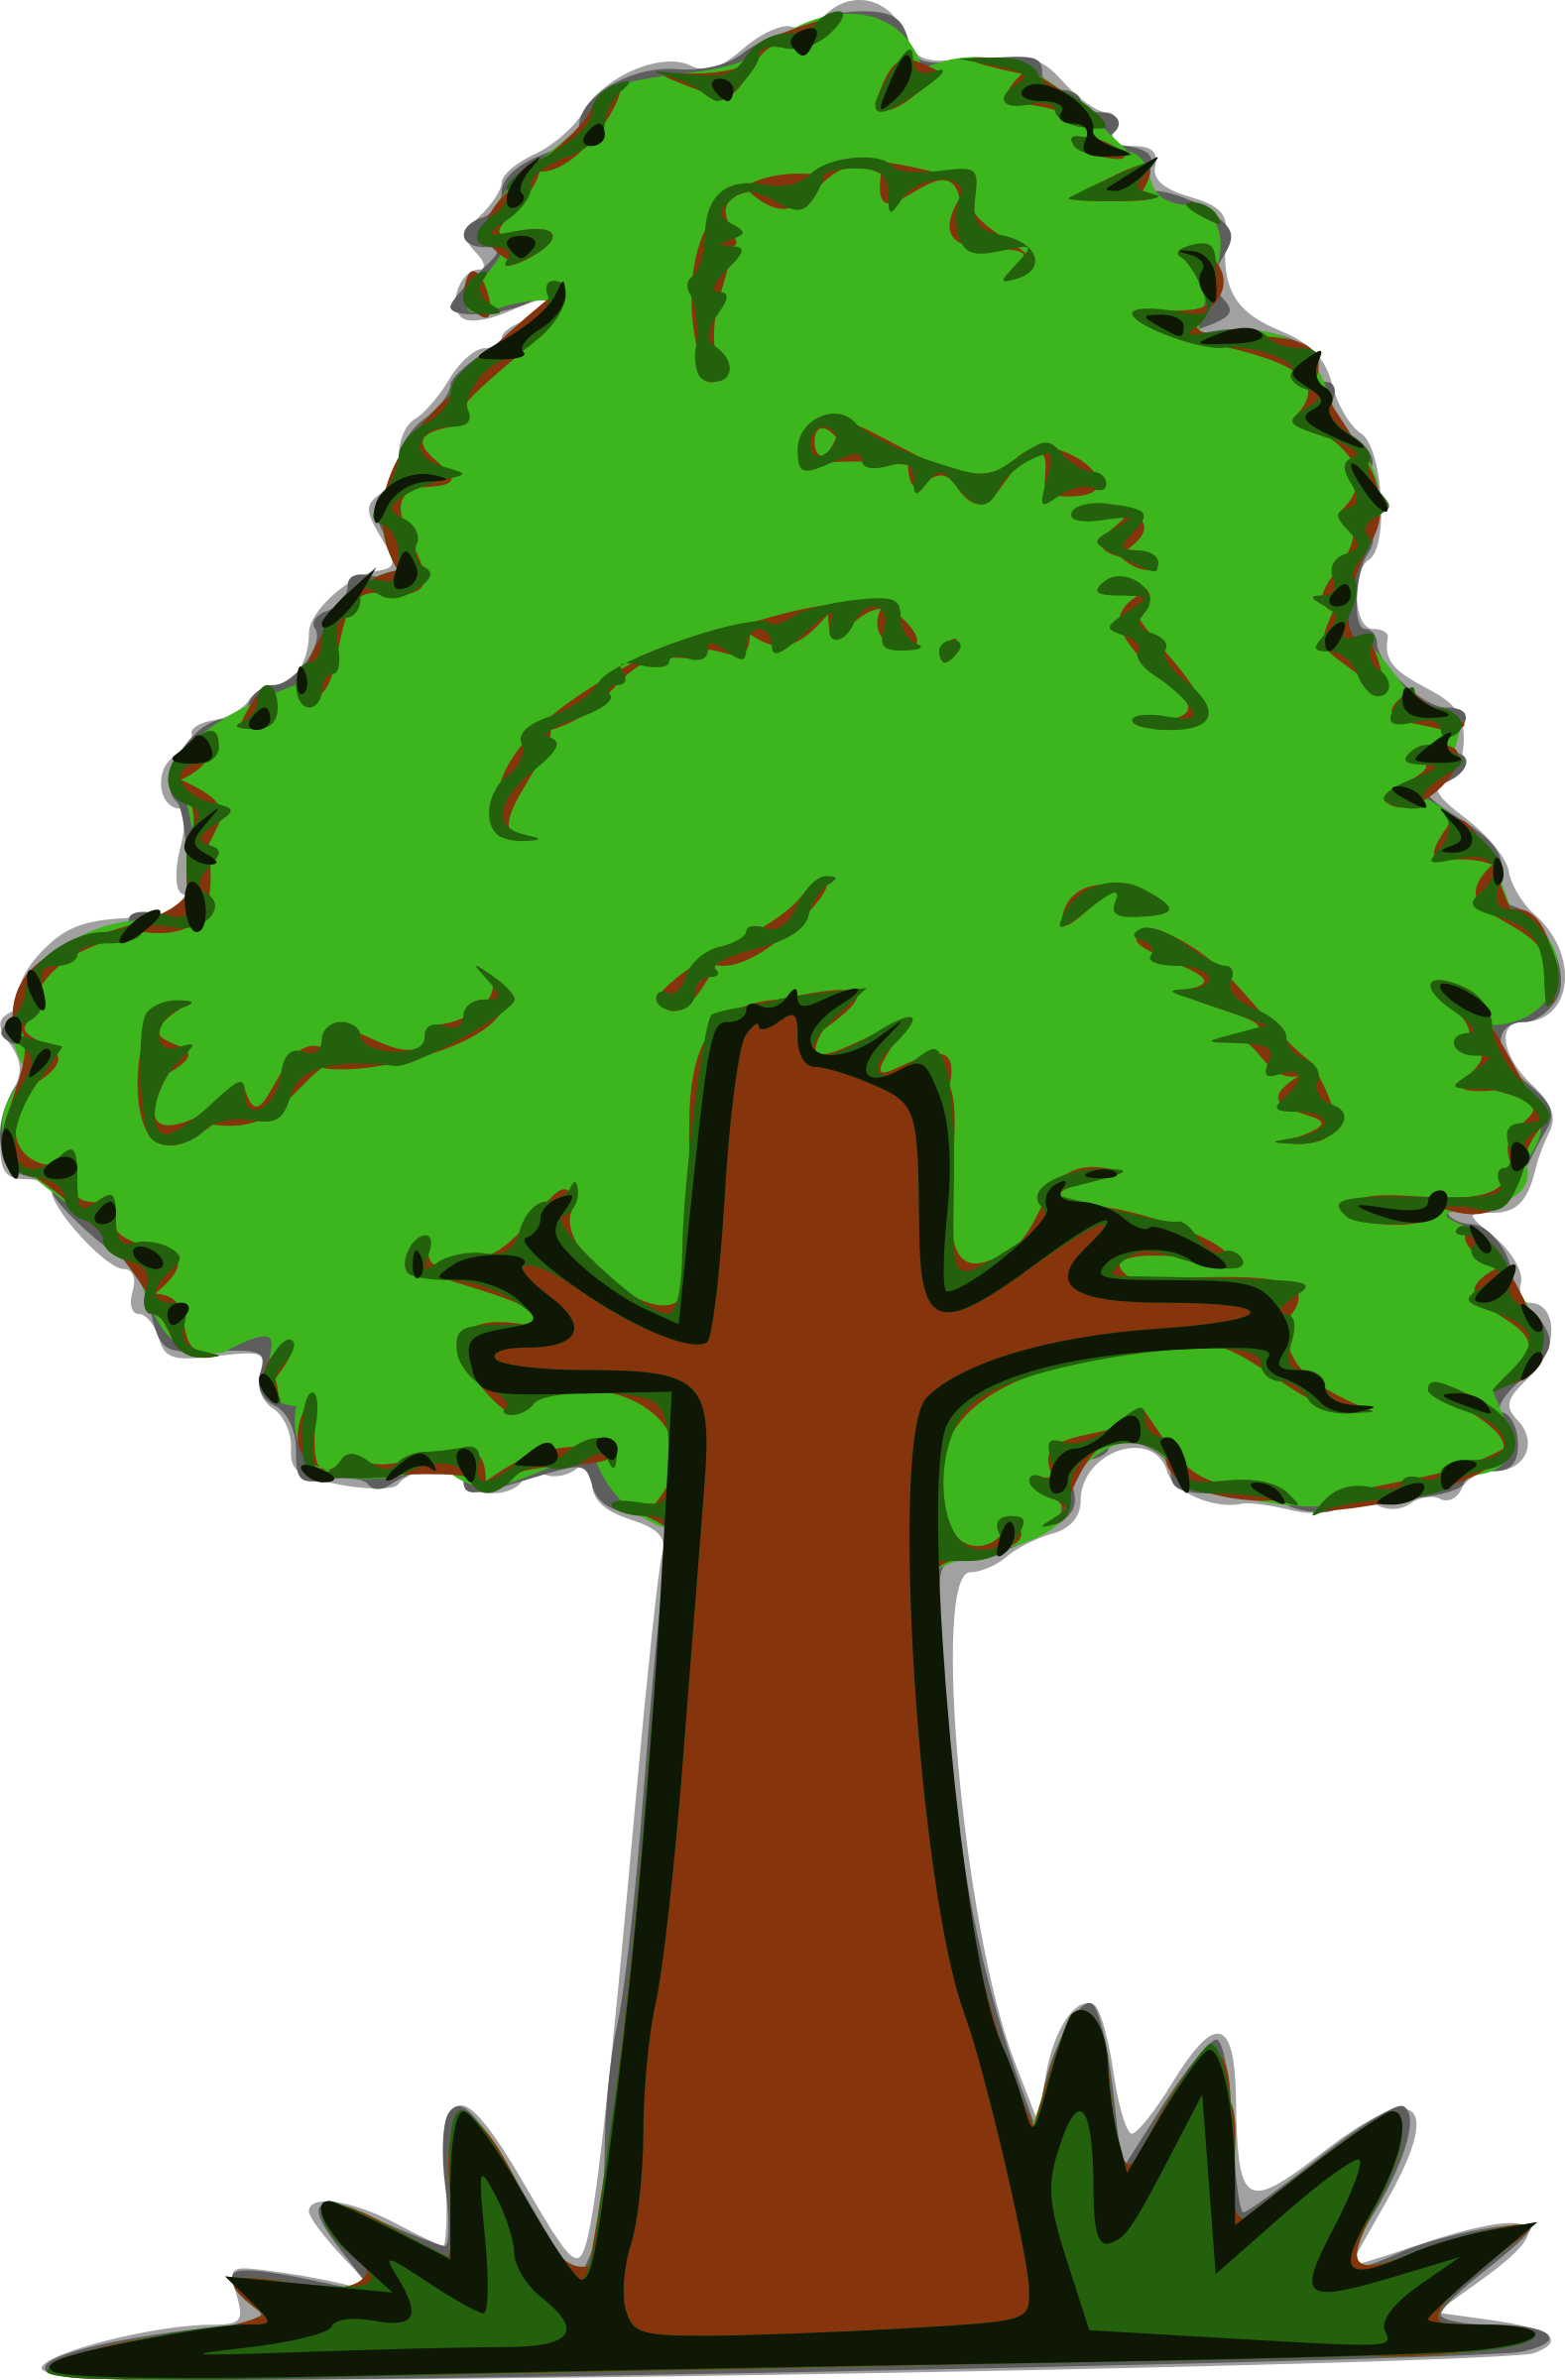 Tree big image png. Clipart grass simple